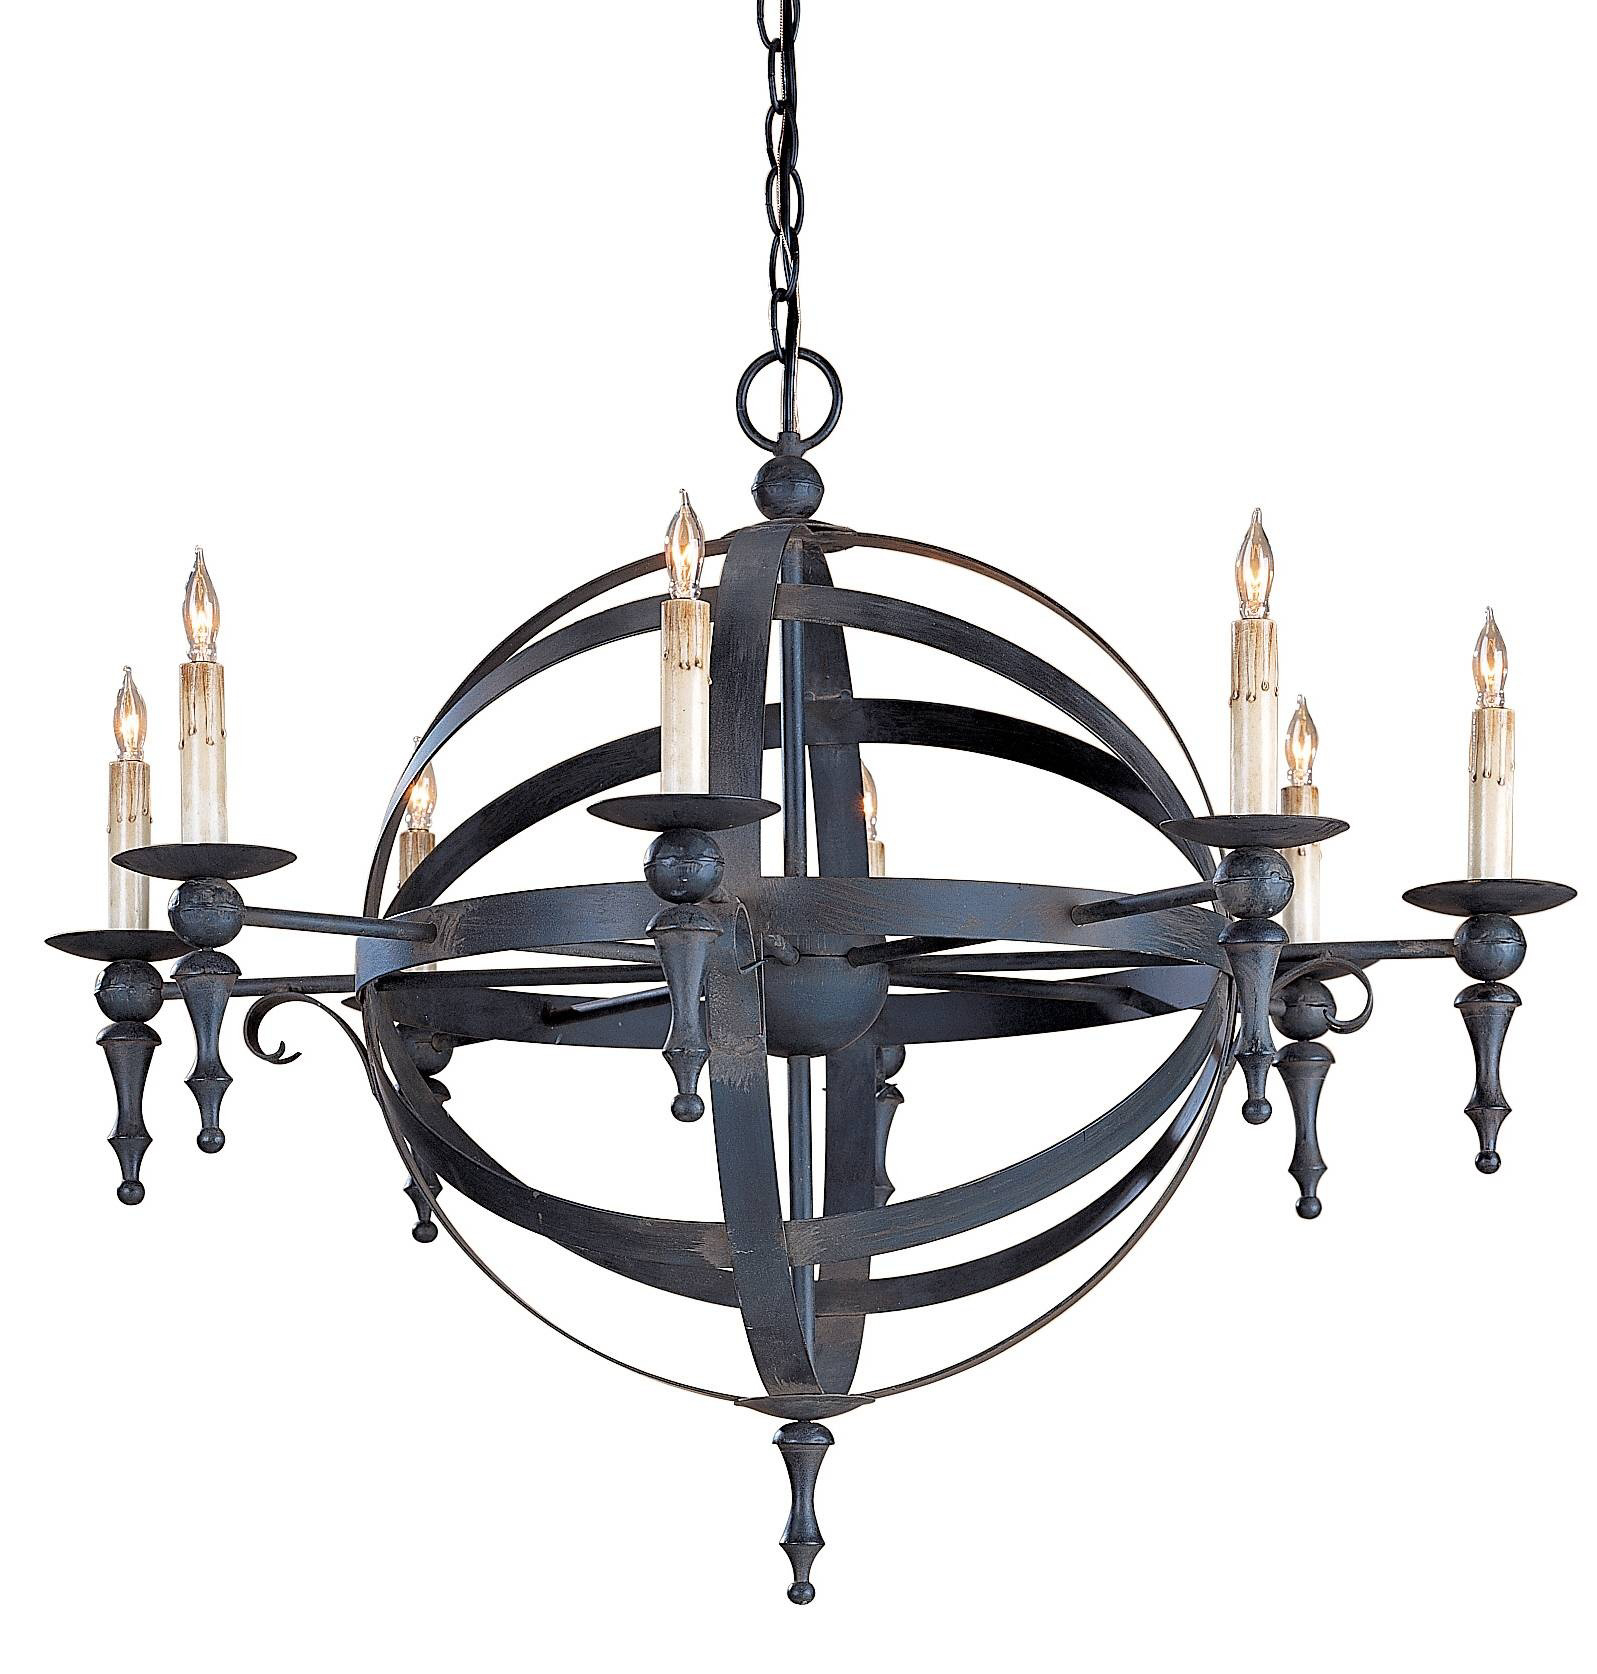 Currey and company chandelier at home and interior design ideas inspirational currey u company armillary sphere chandelier arubaitofo Choice Image